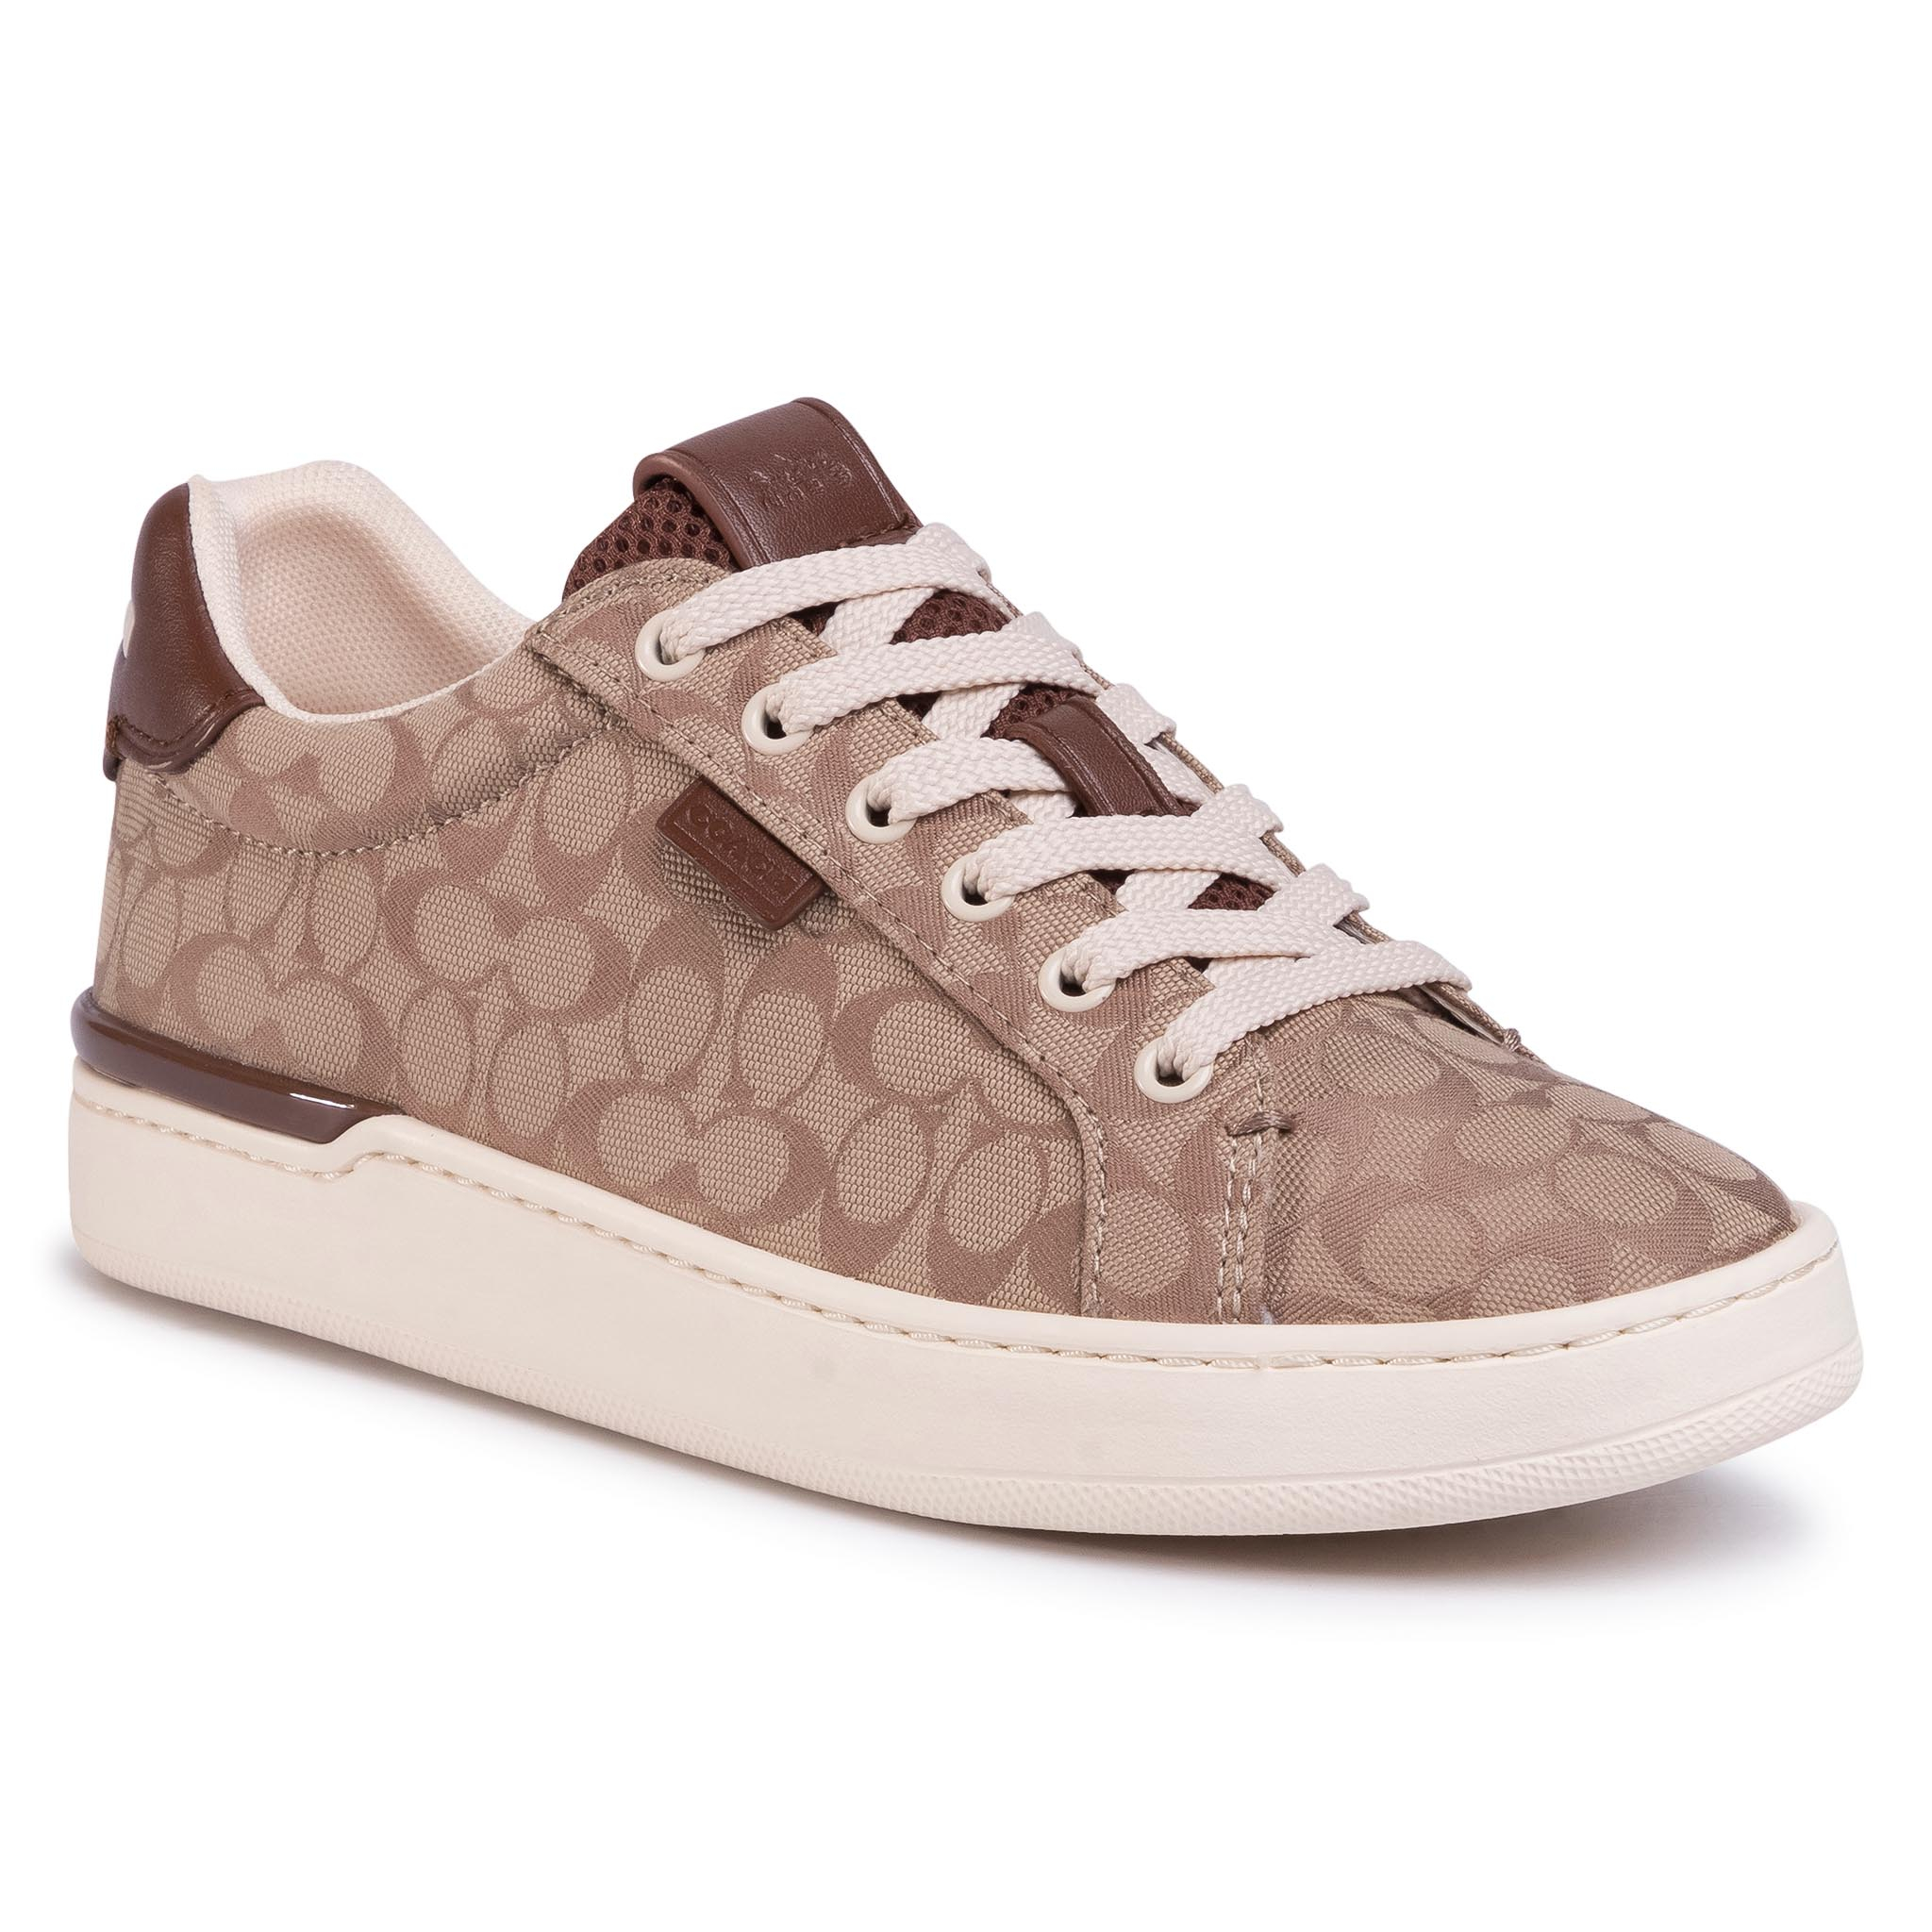 Sneakers COACH - Lowline Sig Low Top G5037 10011275 Stone